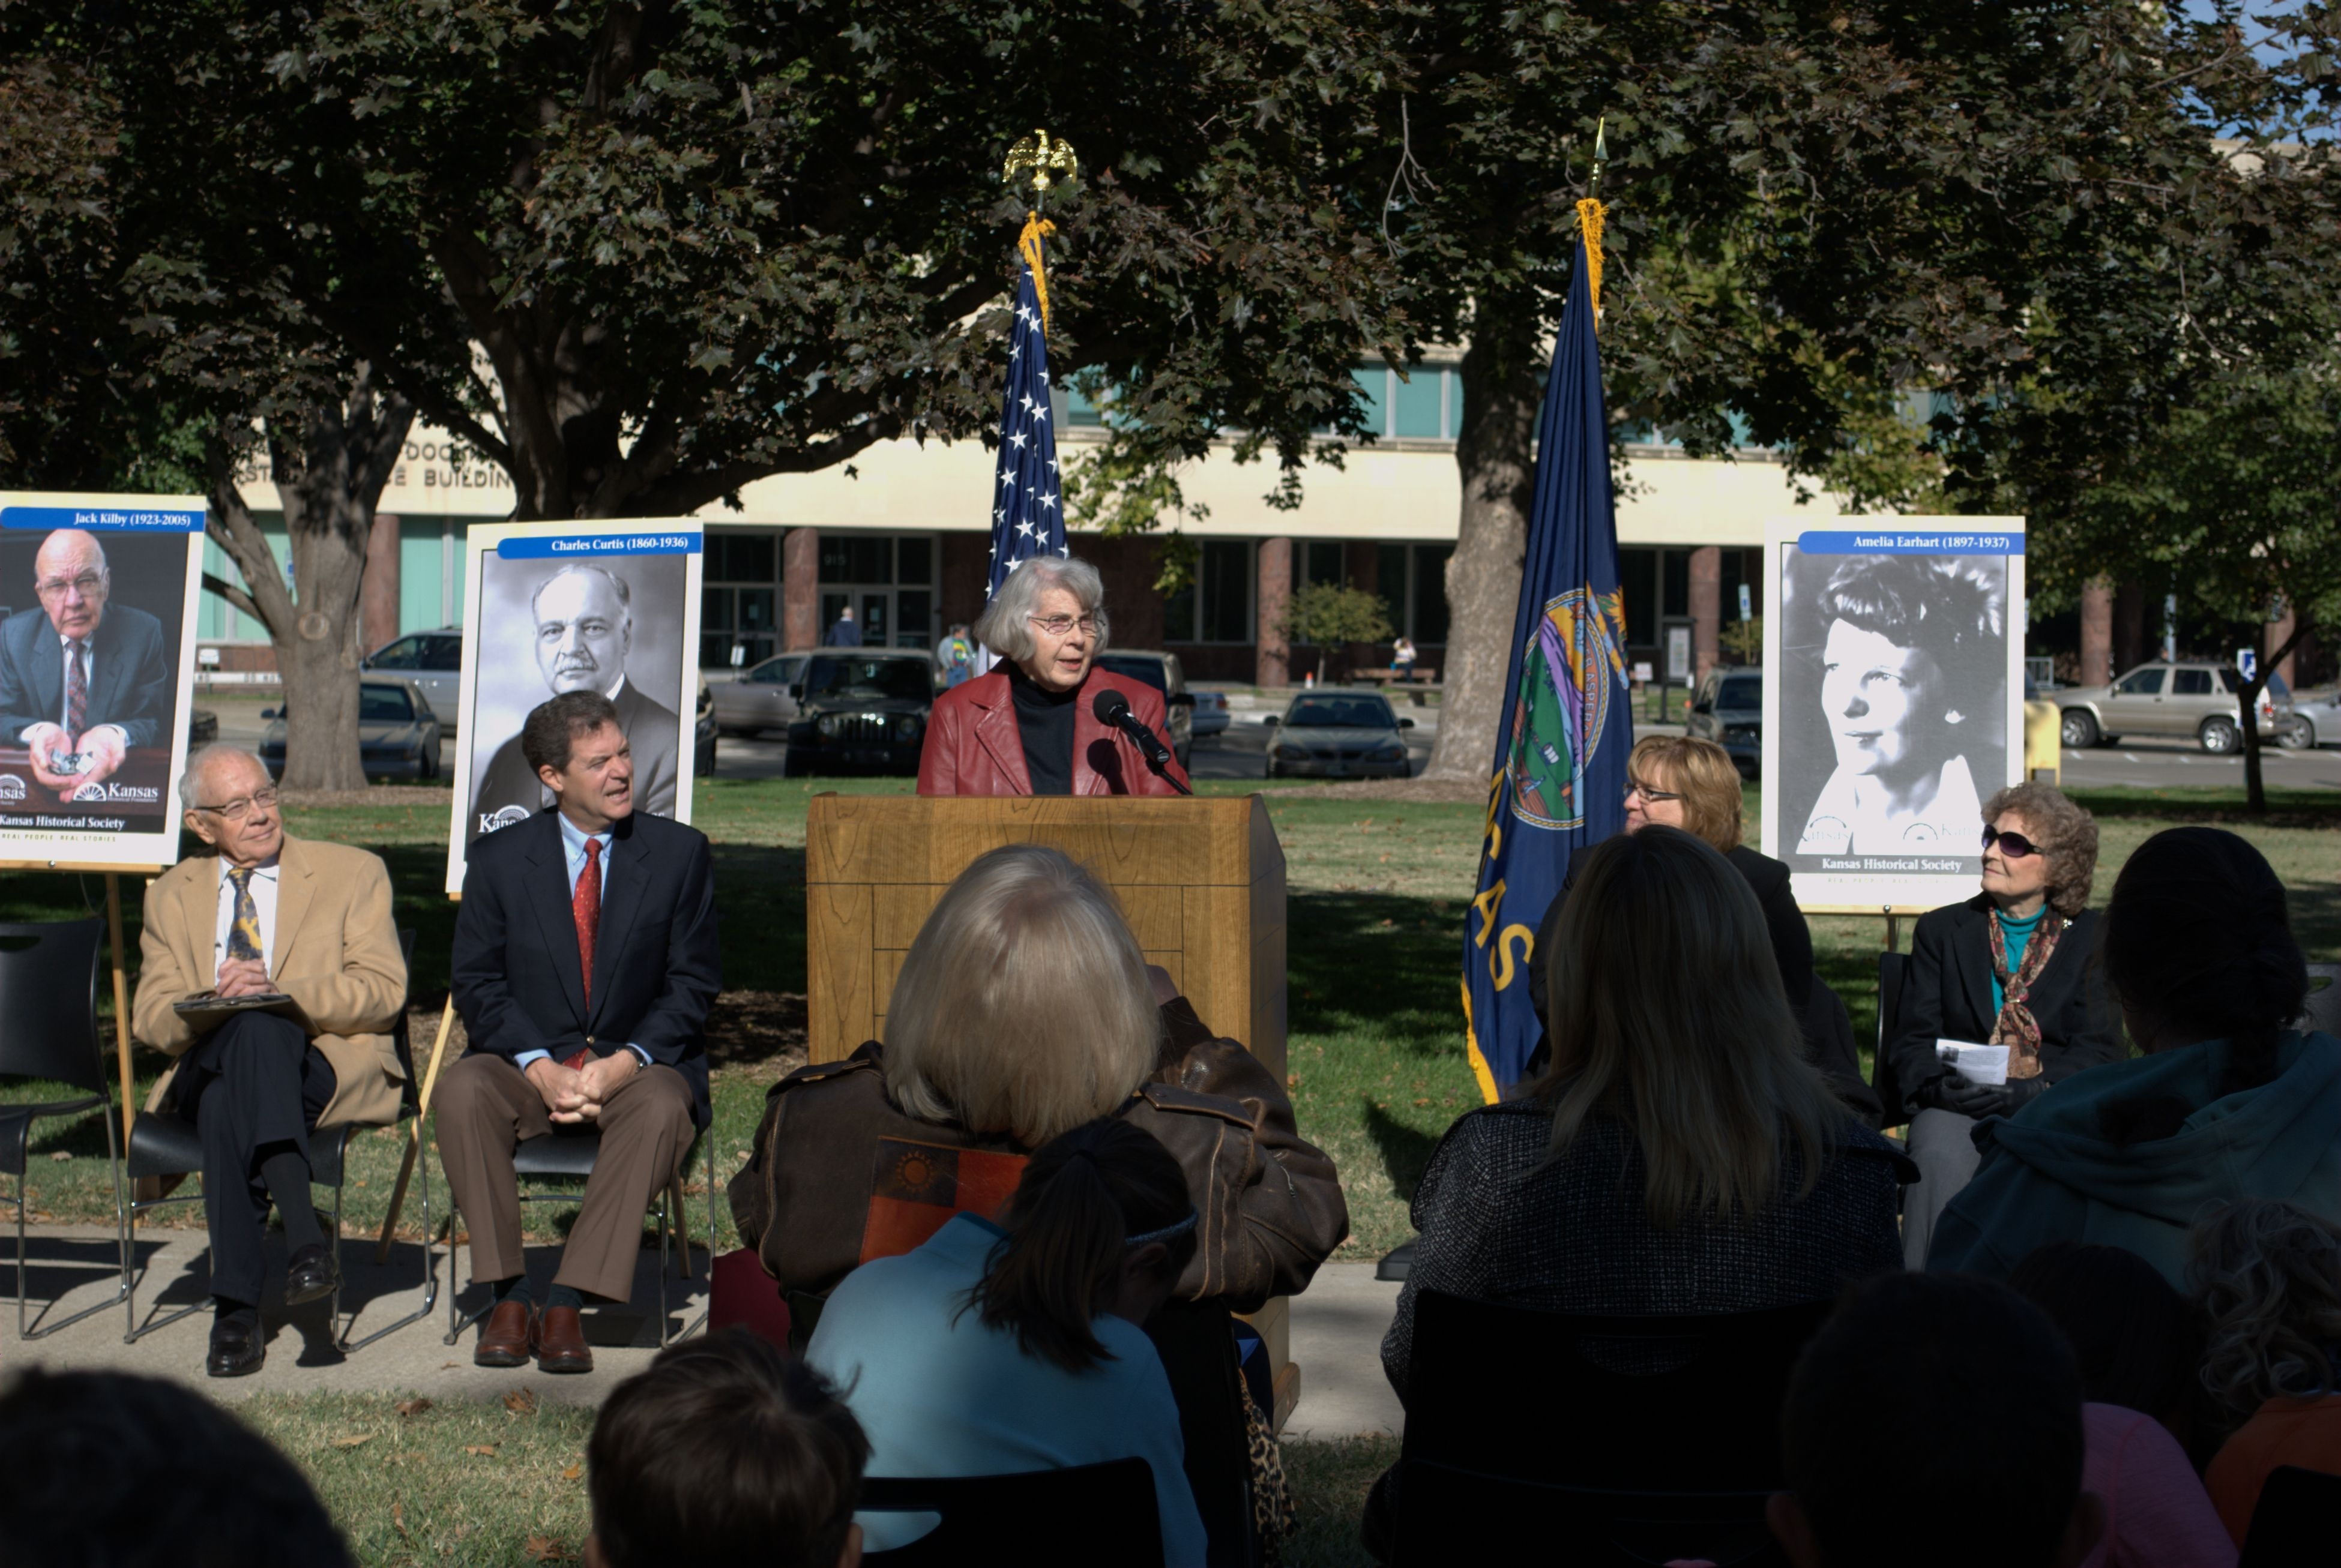 Nova Cottrell inducting Charles Curtis into the Kansas Walk of Honor